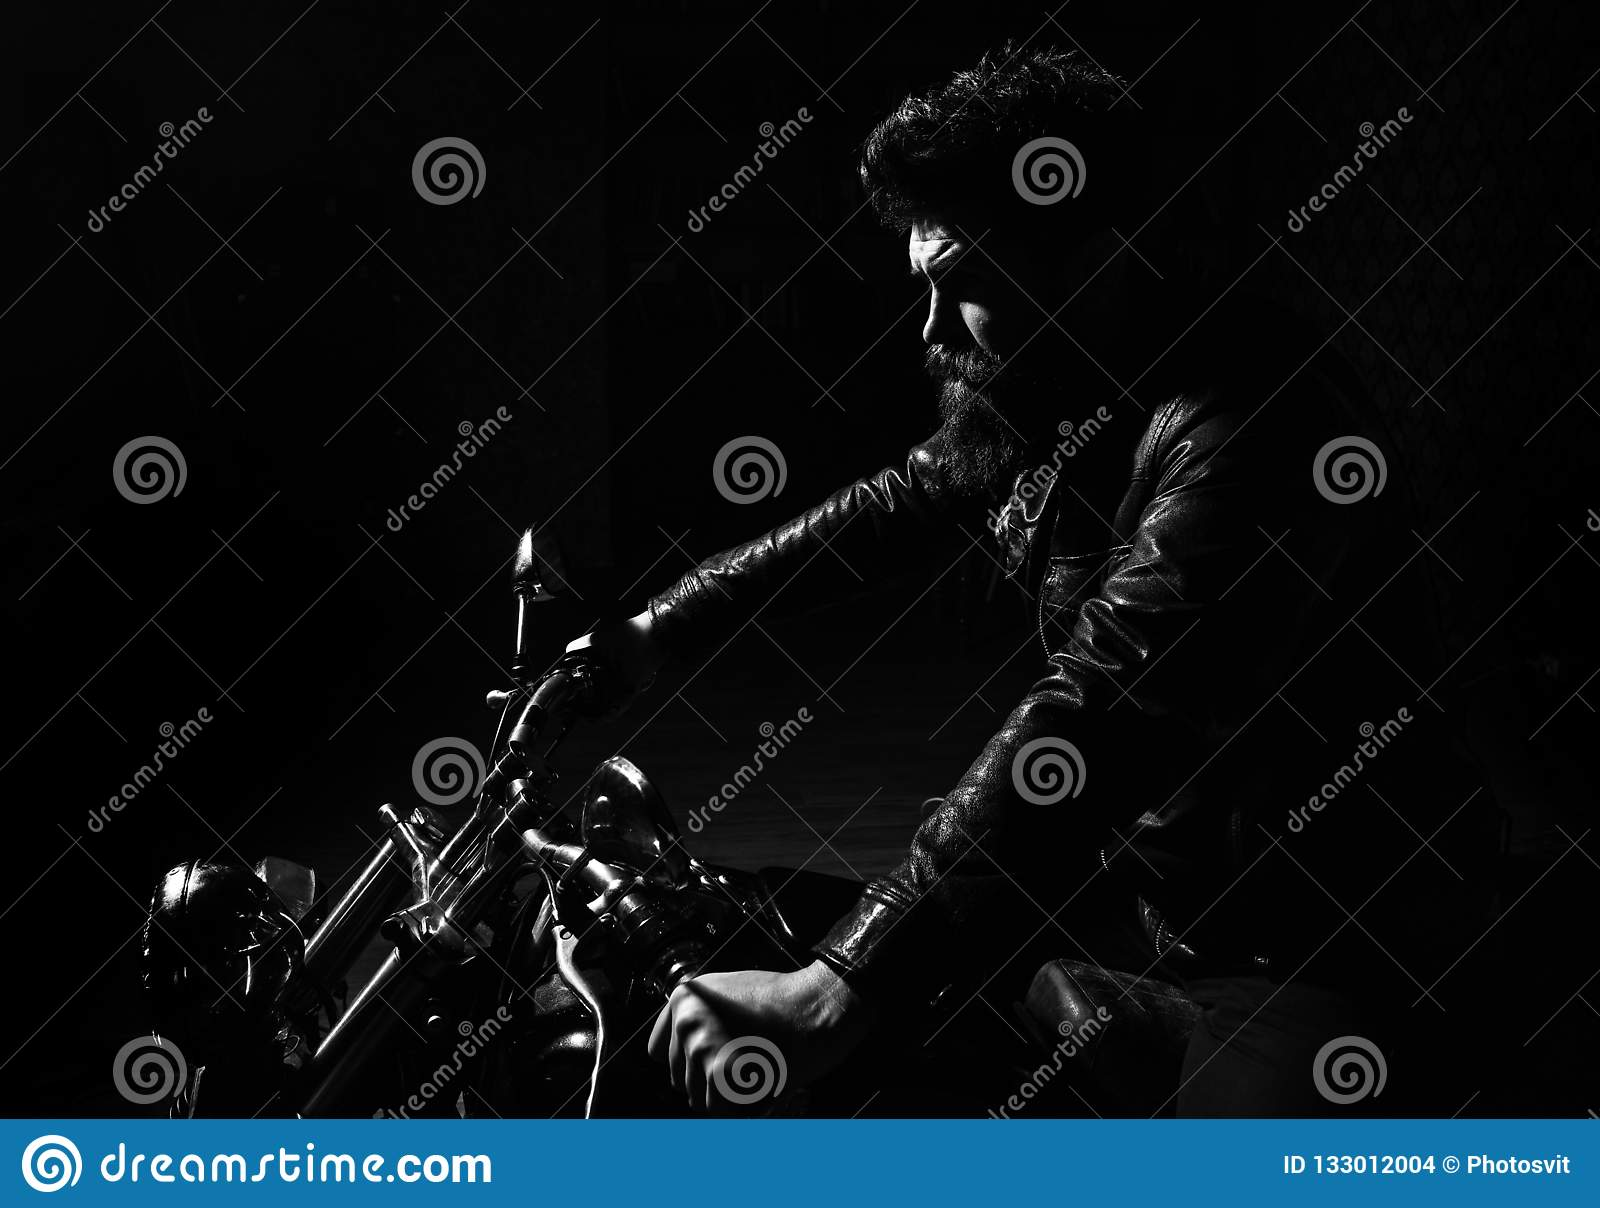 Masculinity concept. Man with beard, biker in leather jacket sitting on motor bike in darkness, black background. Macho